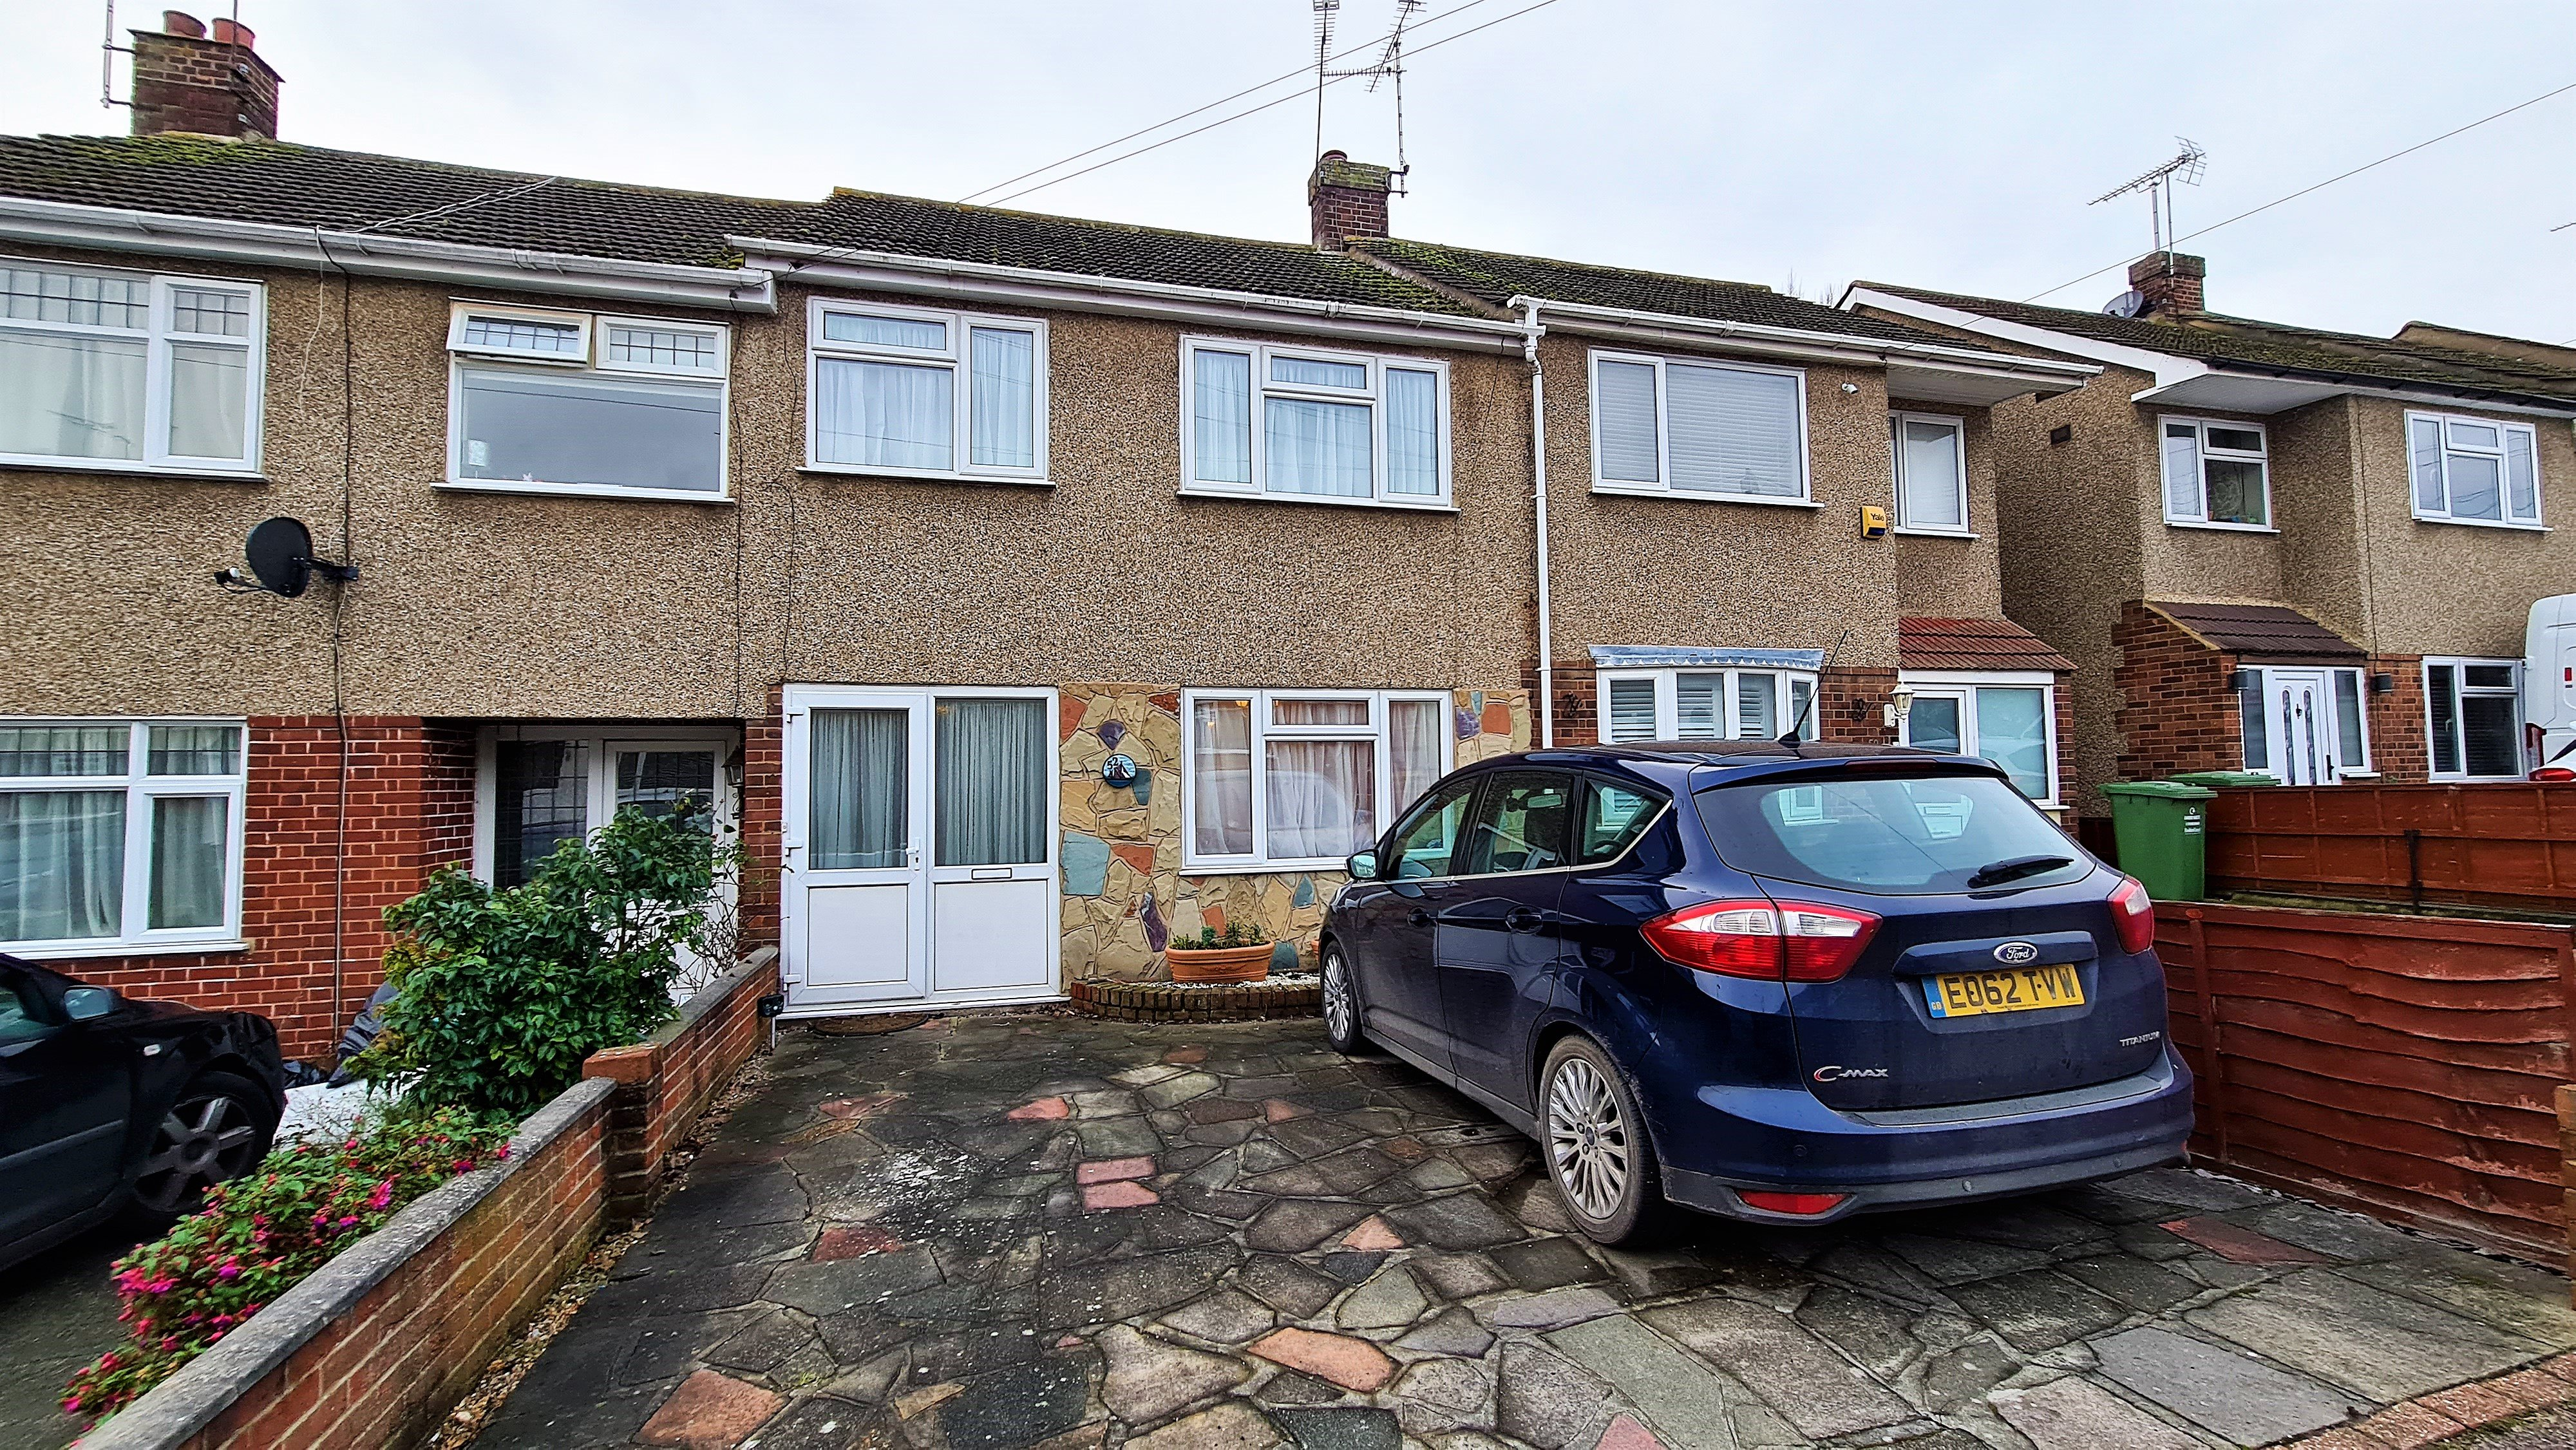 3 bed terraced house to rent in Passingham Avenue, Billericay - Property Image 1